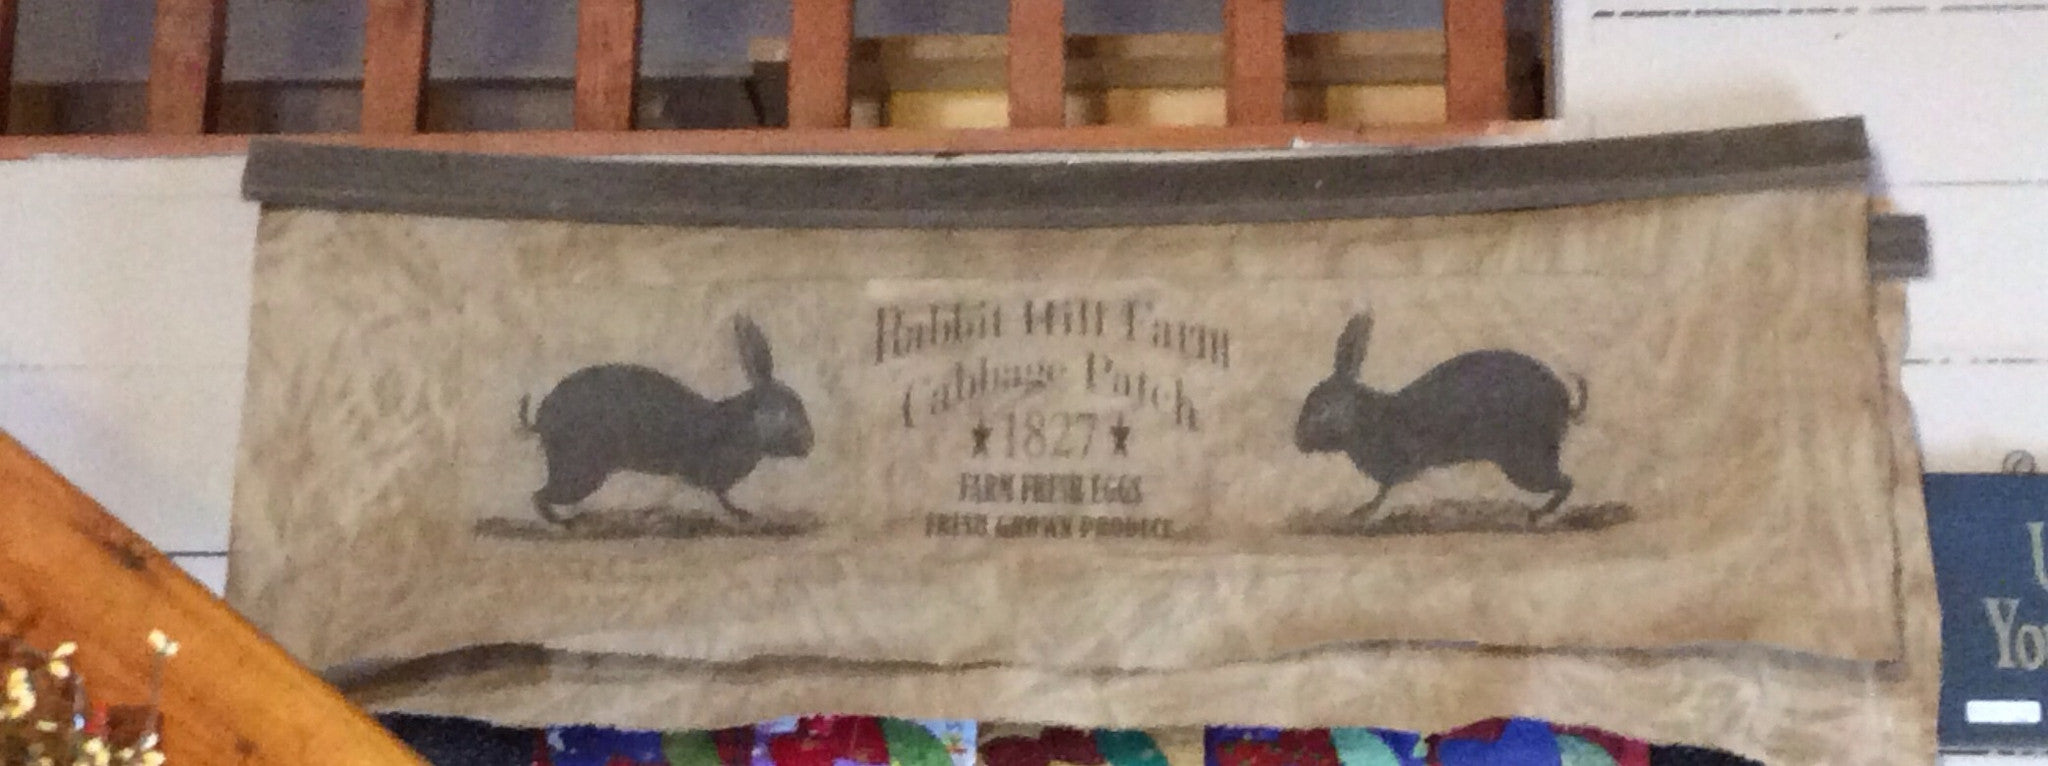 Rabbit Hill Farm Cloth Wall Hanging